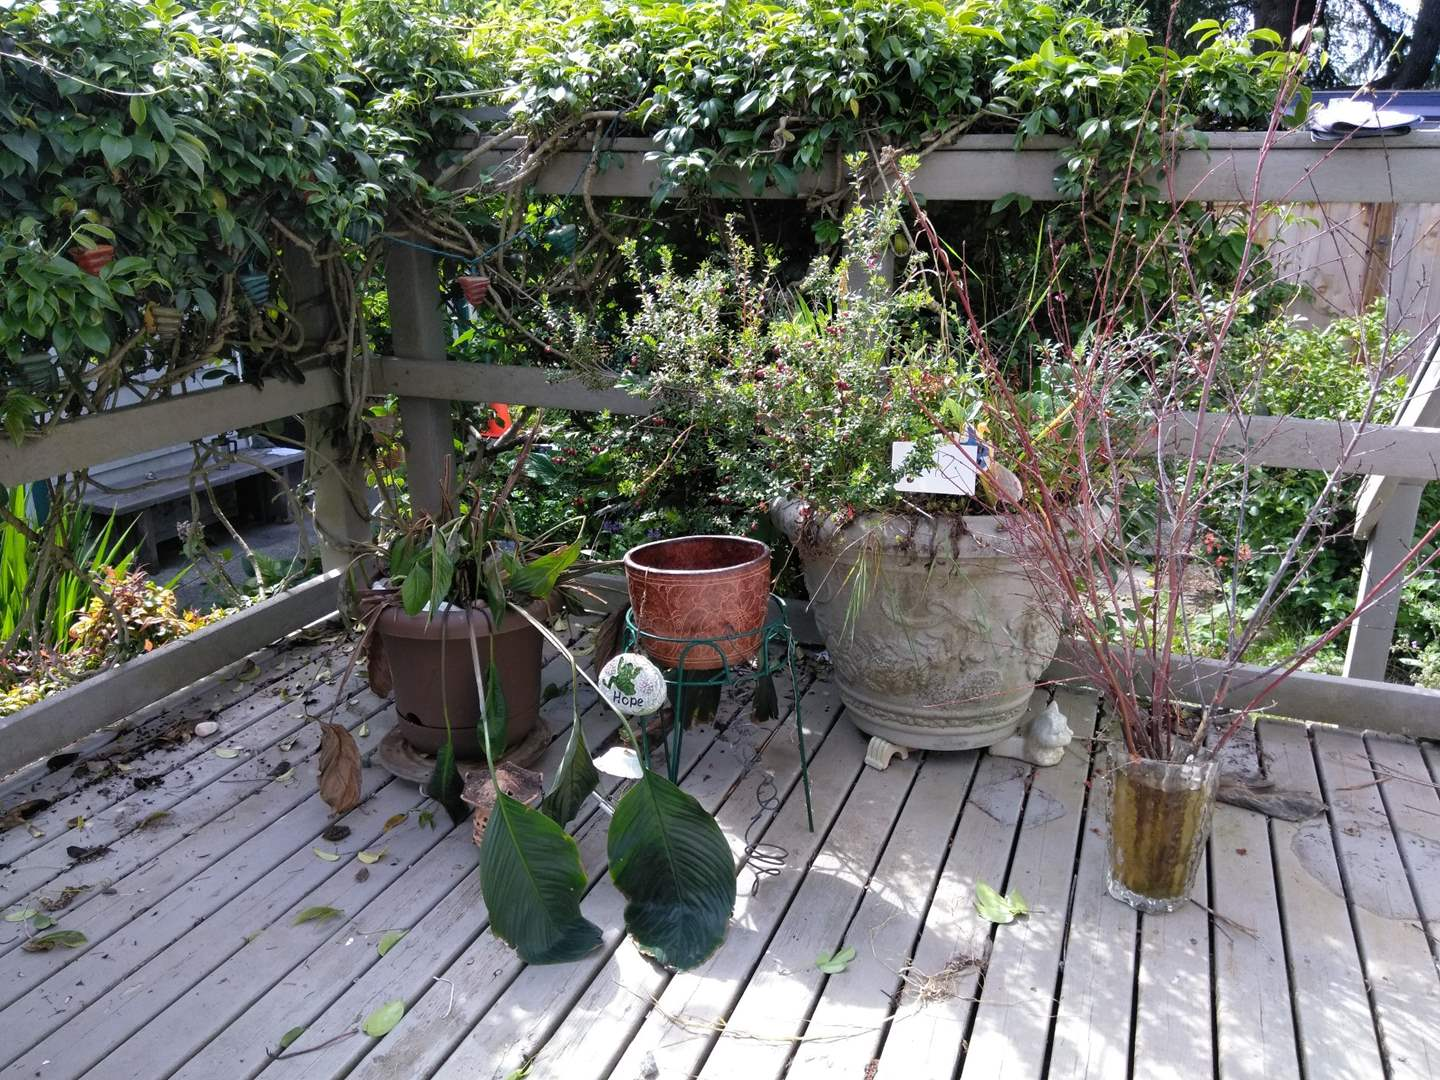 Lot # 172 - Plants, pots, plant stand, wind chimes, ceramic pot feet (main image)